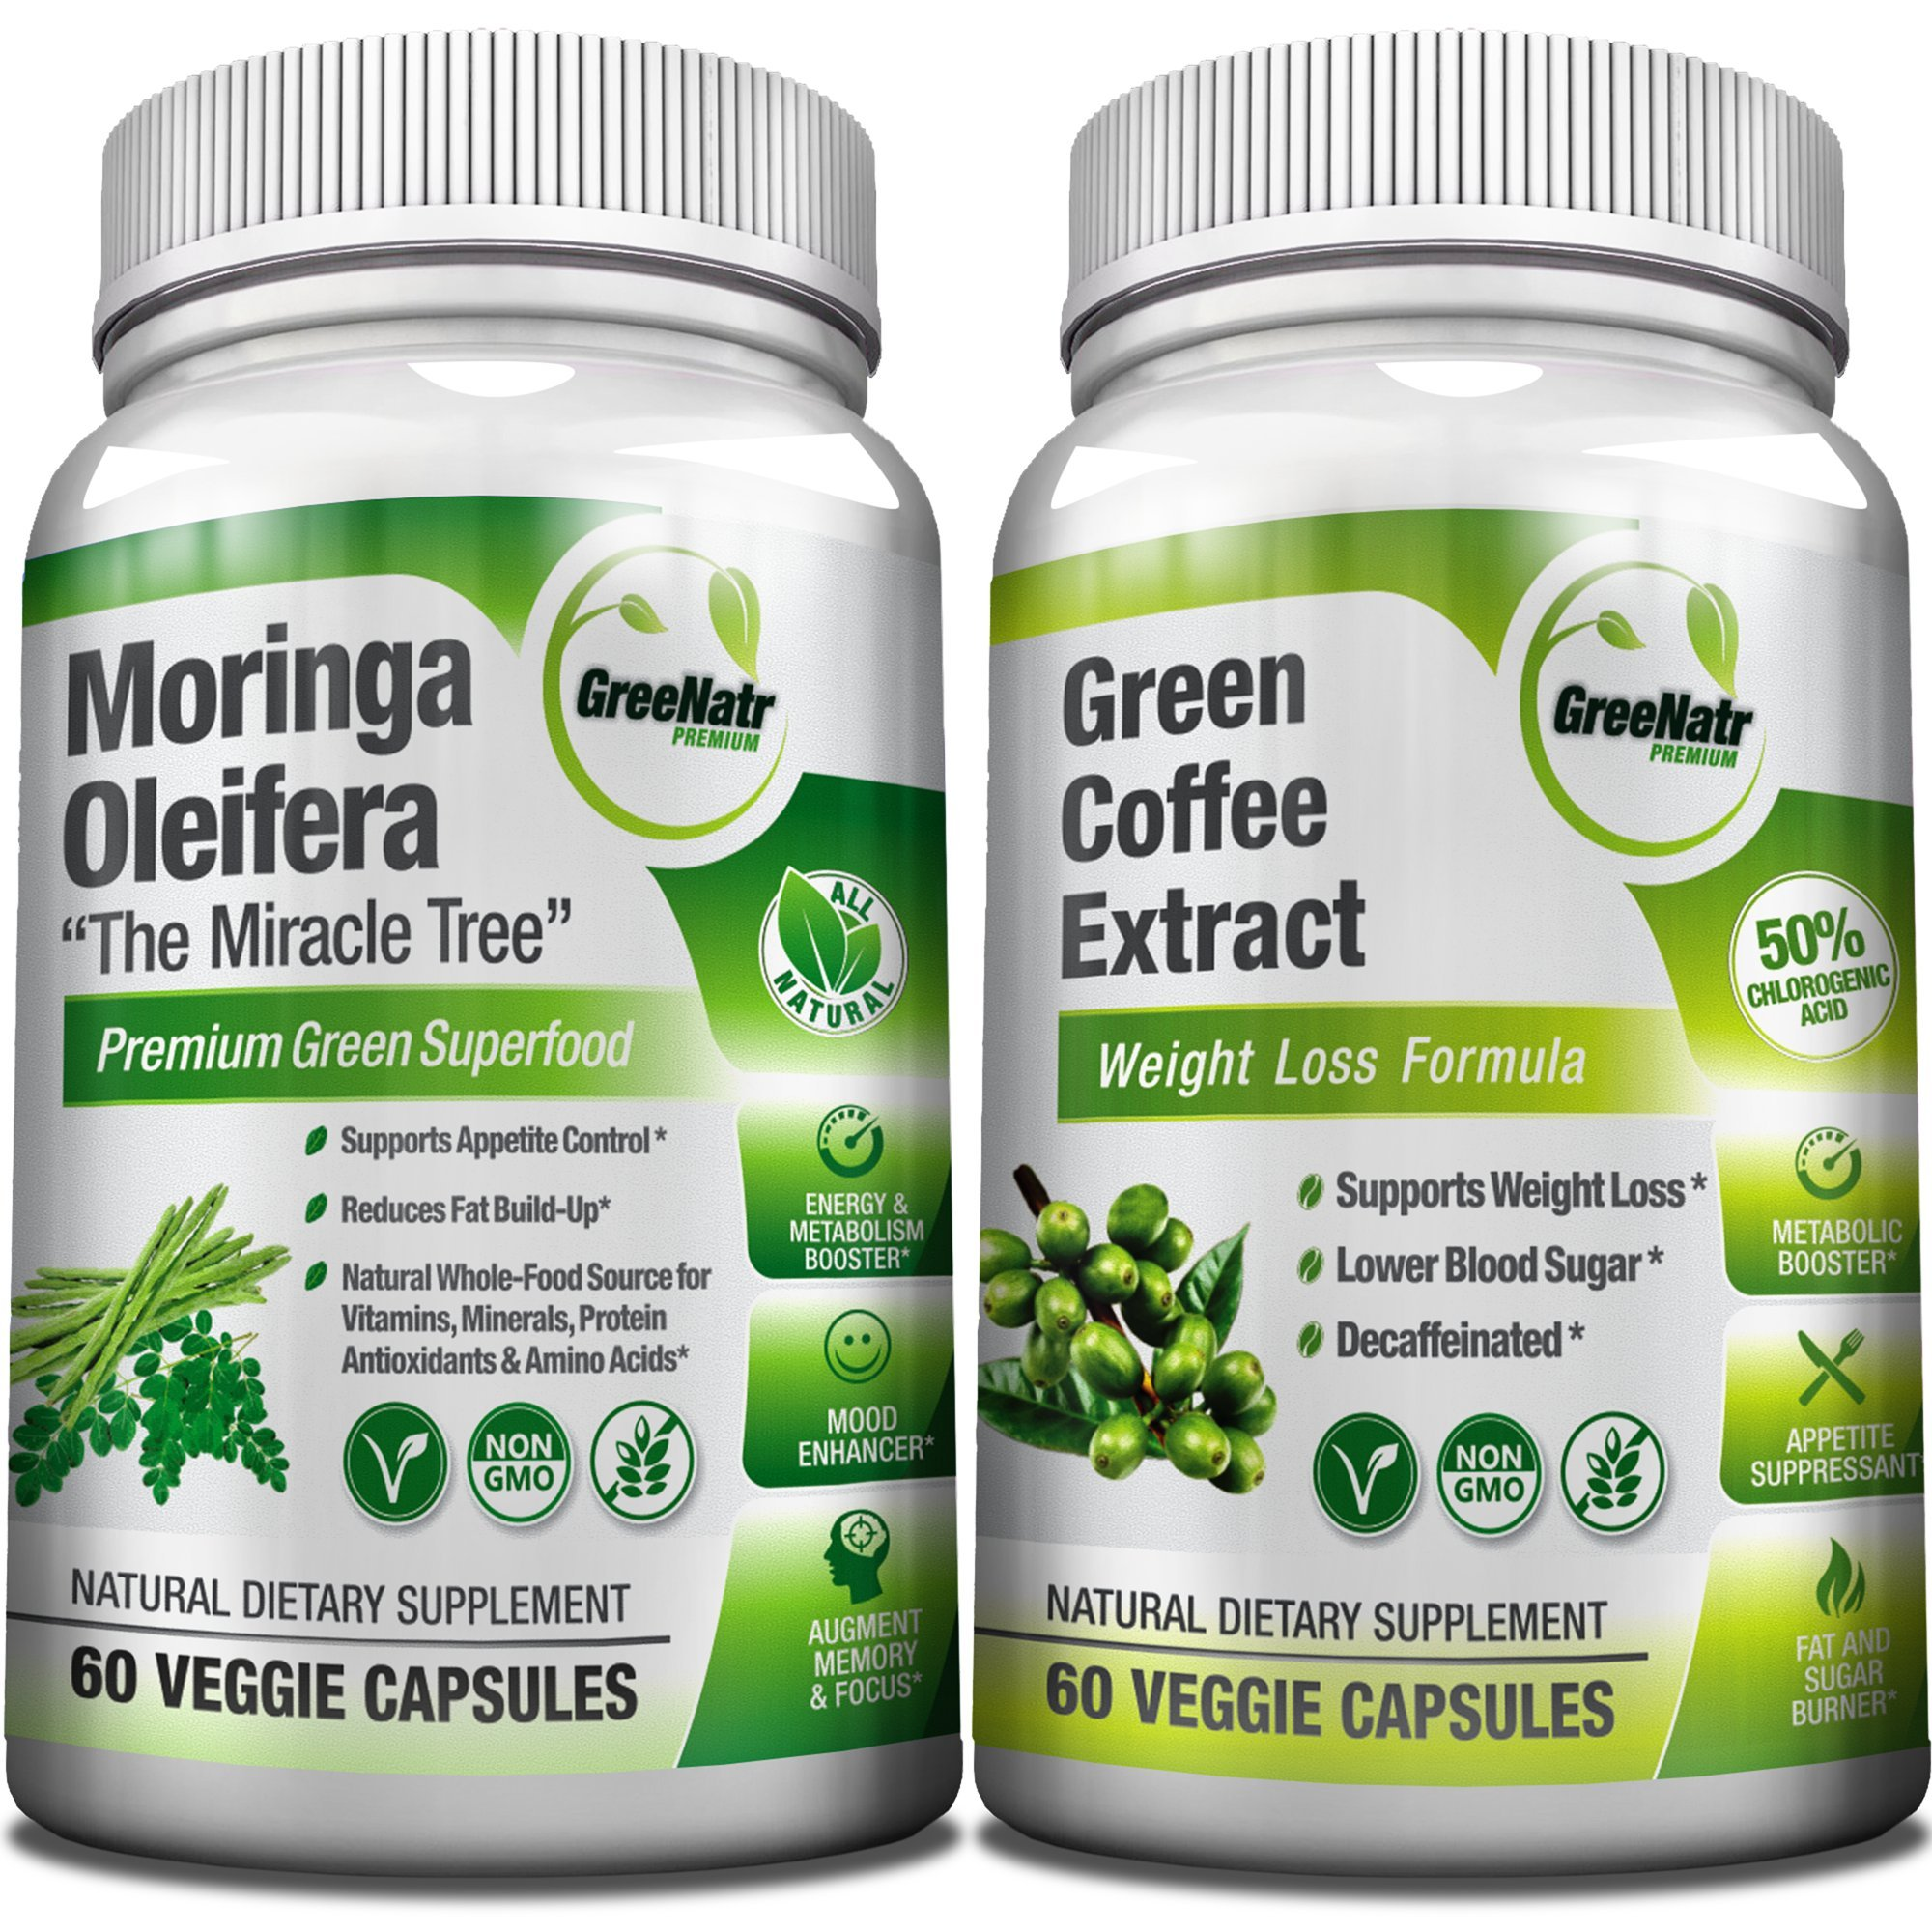 Moringa Oleifera + Green Coffee Bean Extract- Weight Loss, Healthy Heart and Blood Sugar Support Bundle - 120 Count